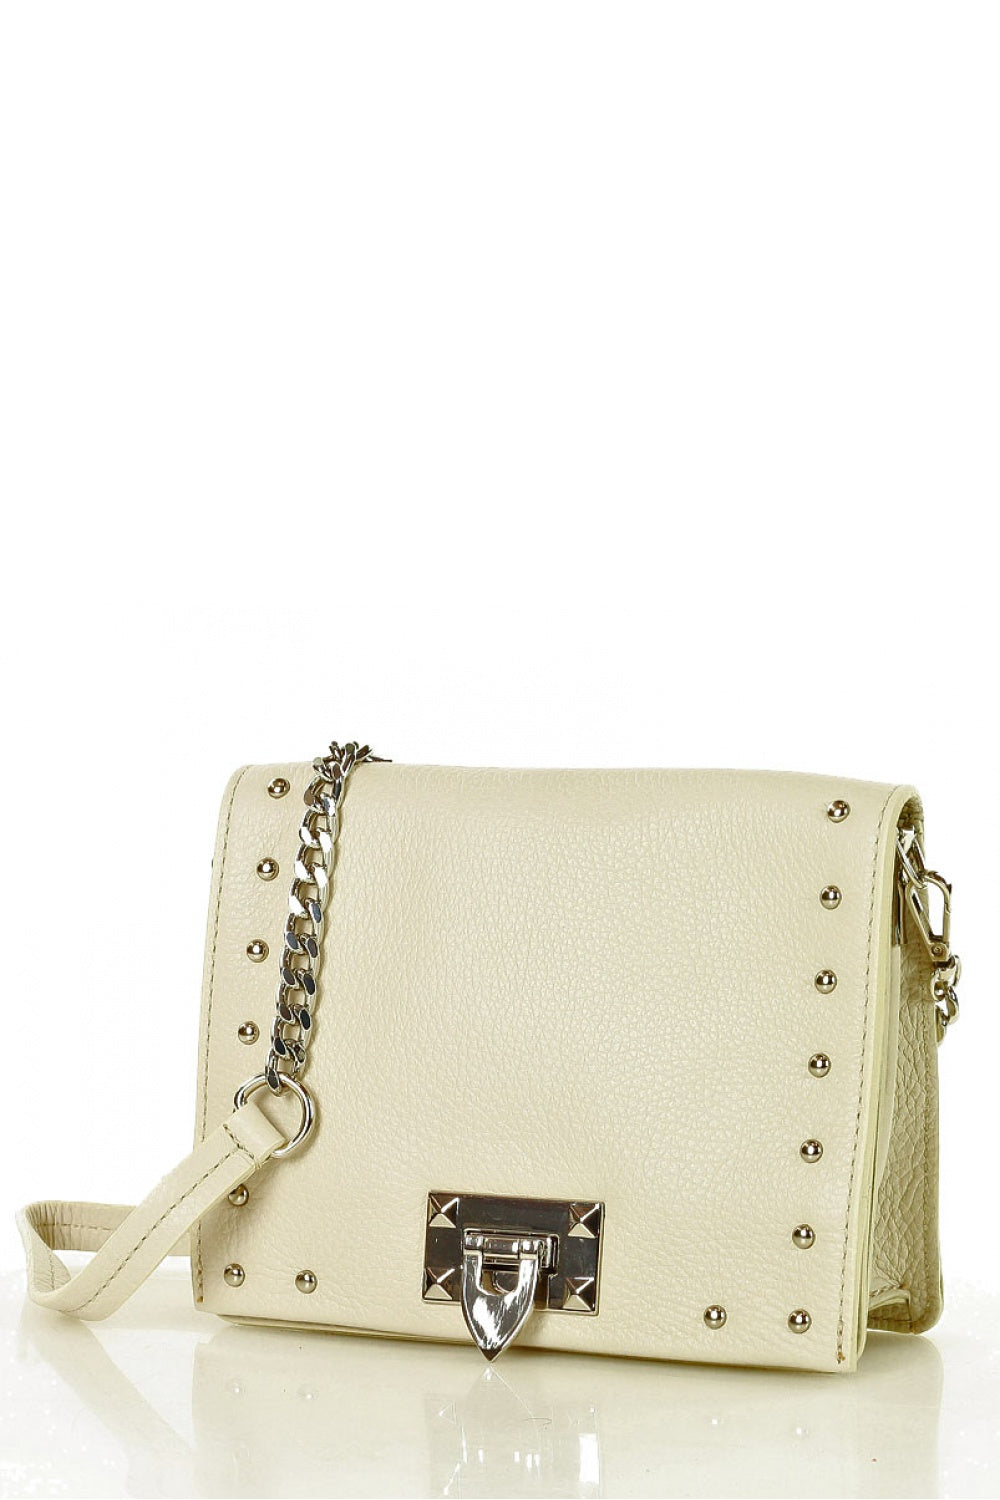 Rocking Purse 141628 Mazzini